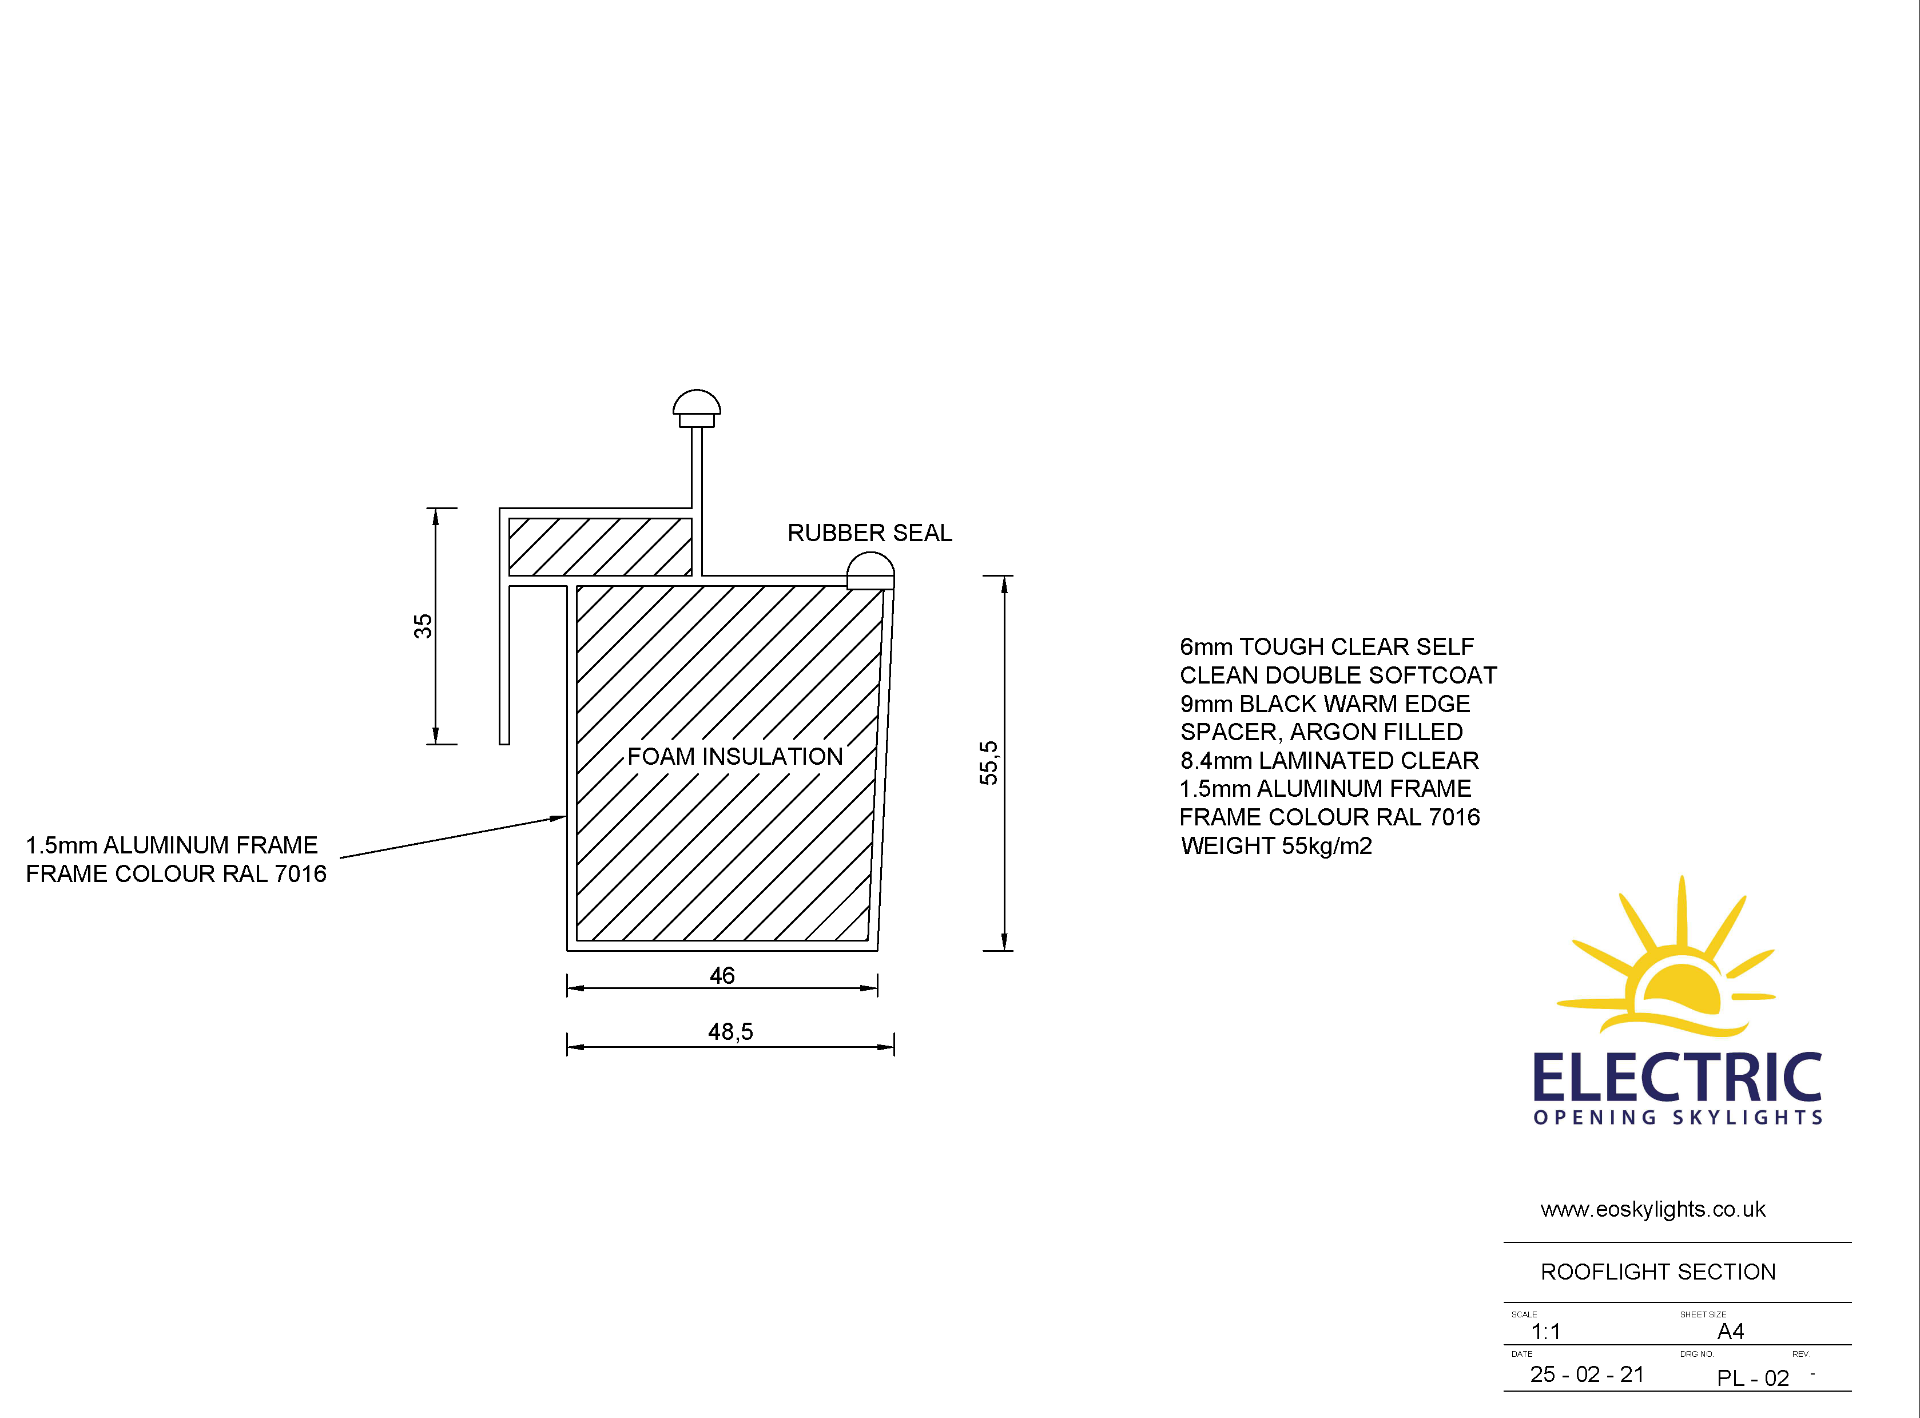 Panoroof (EOS) Electric Opening Skylight 800x1800mm - Aluminiun Frame Double Glazed Laminated Self- - Image 5 of 6